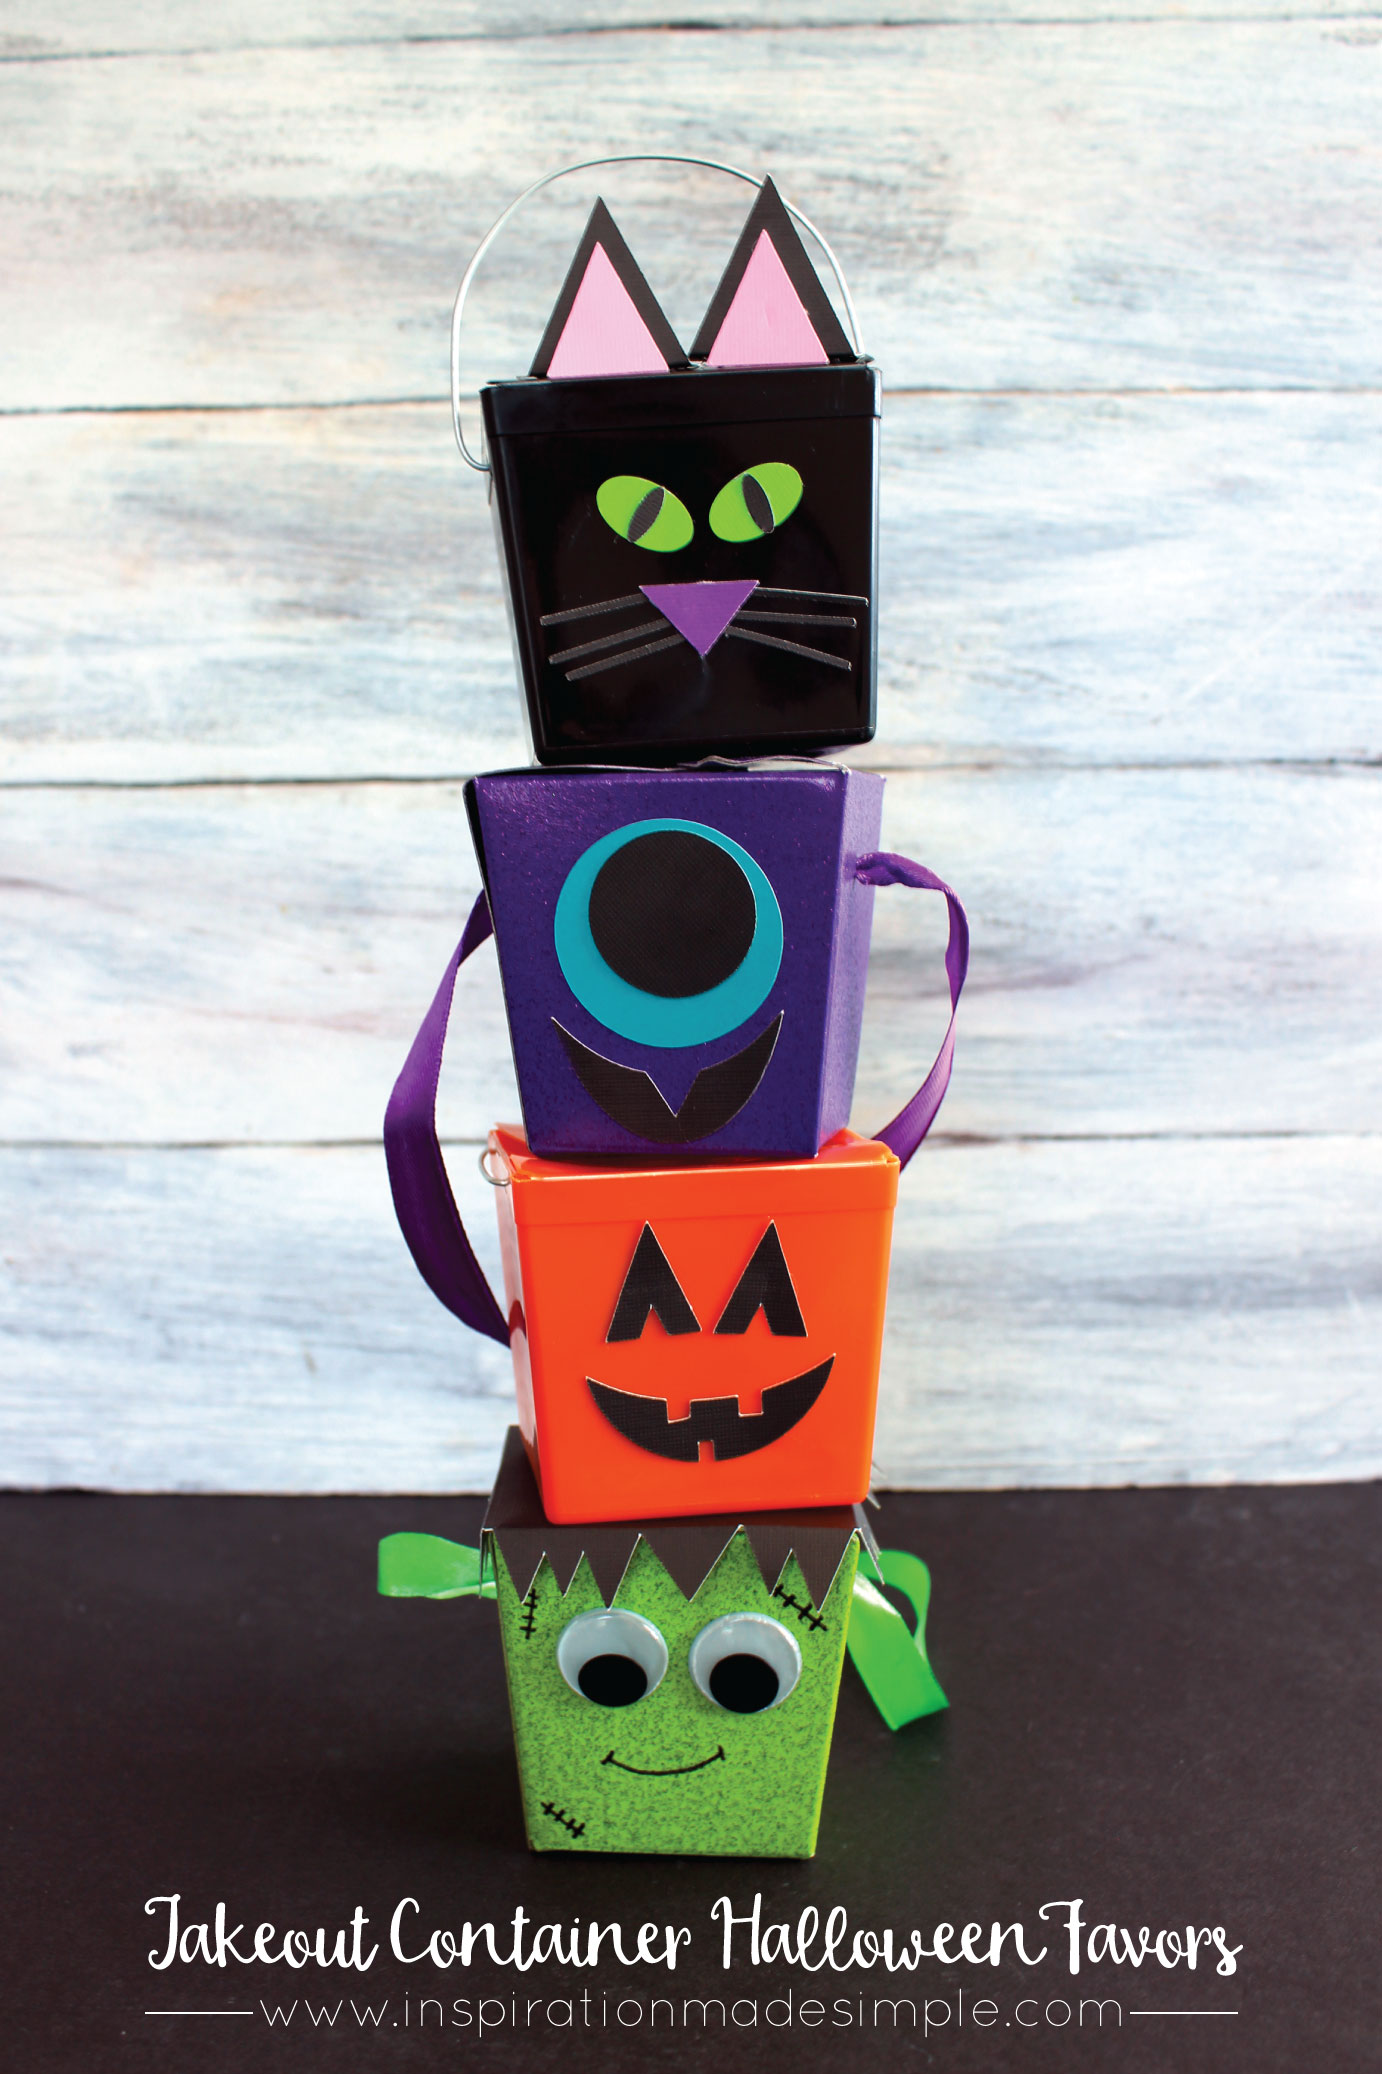 Takeout Container Halloween Favors